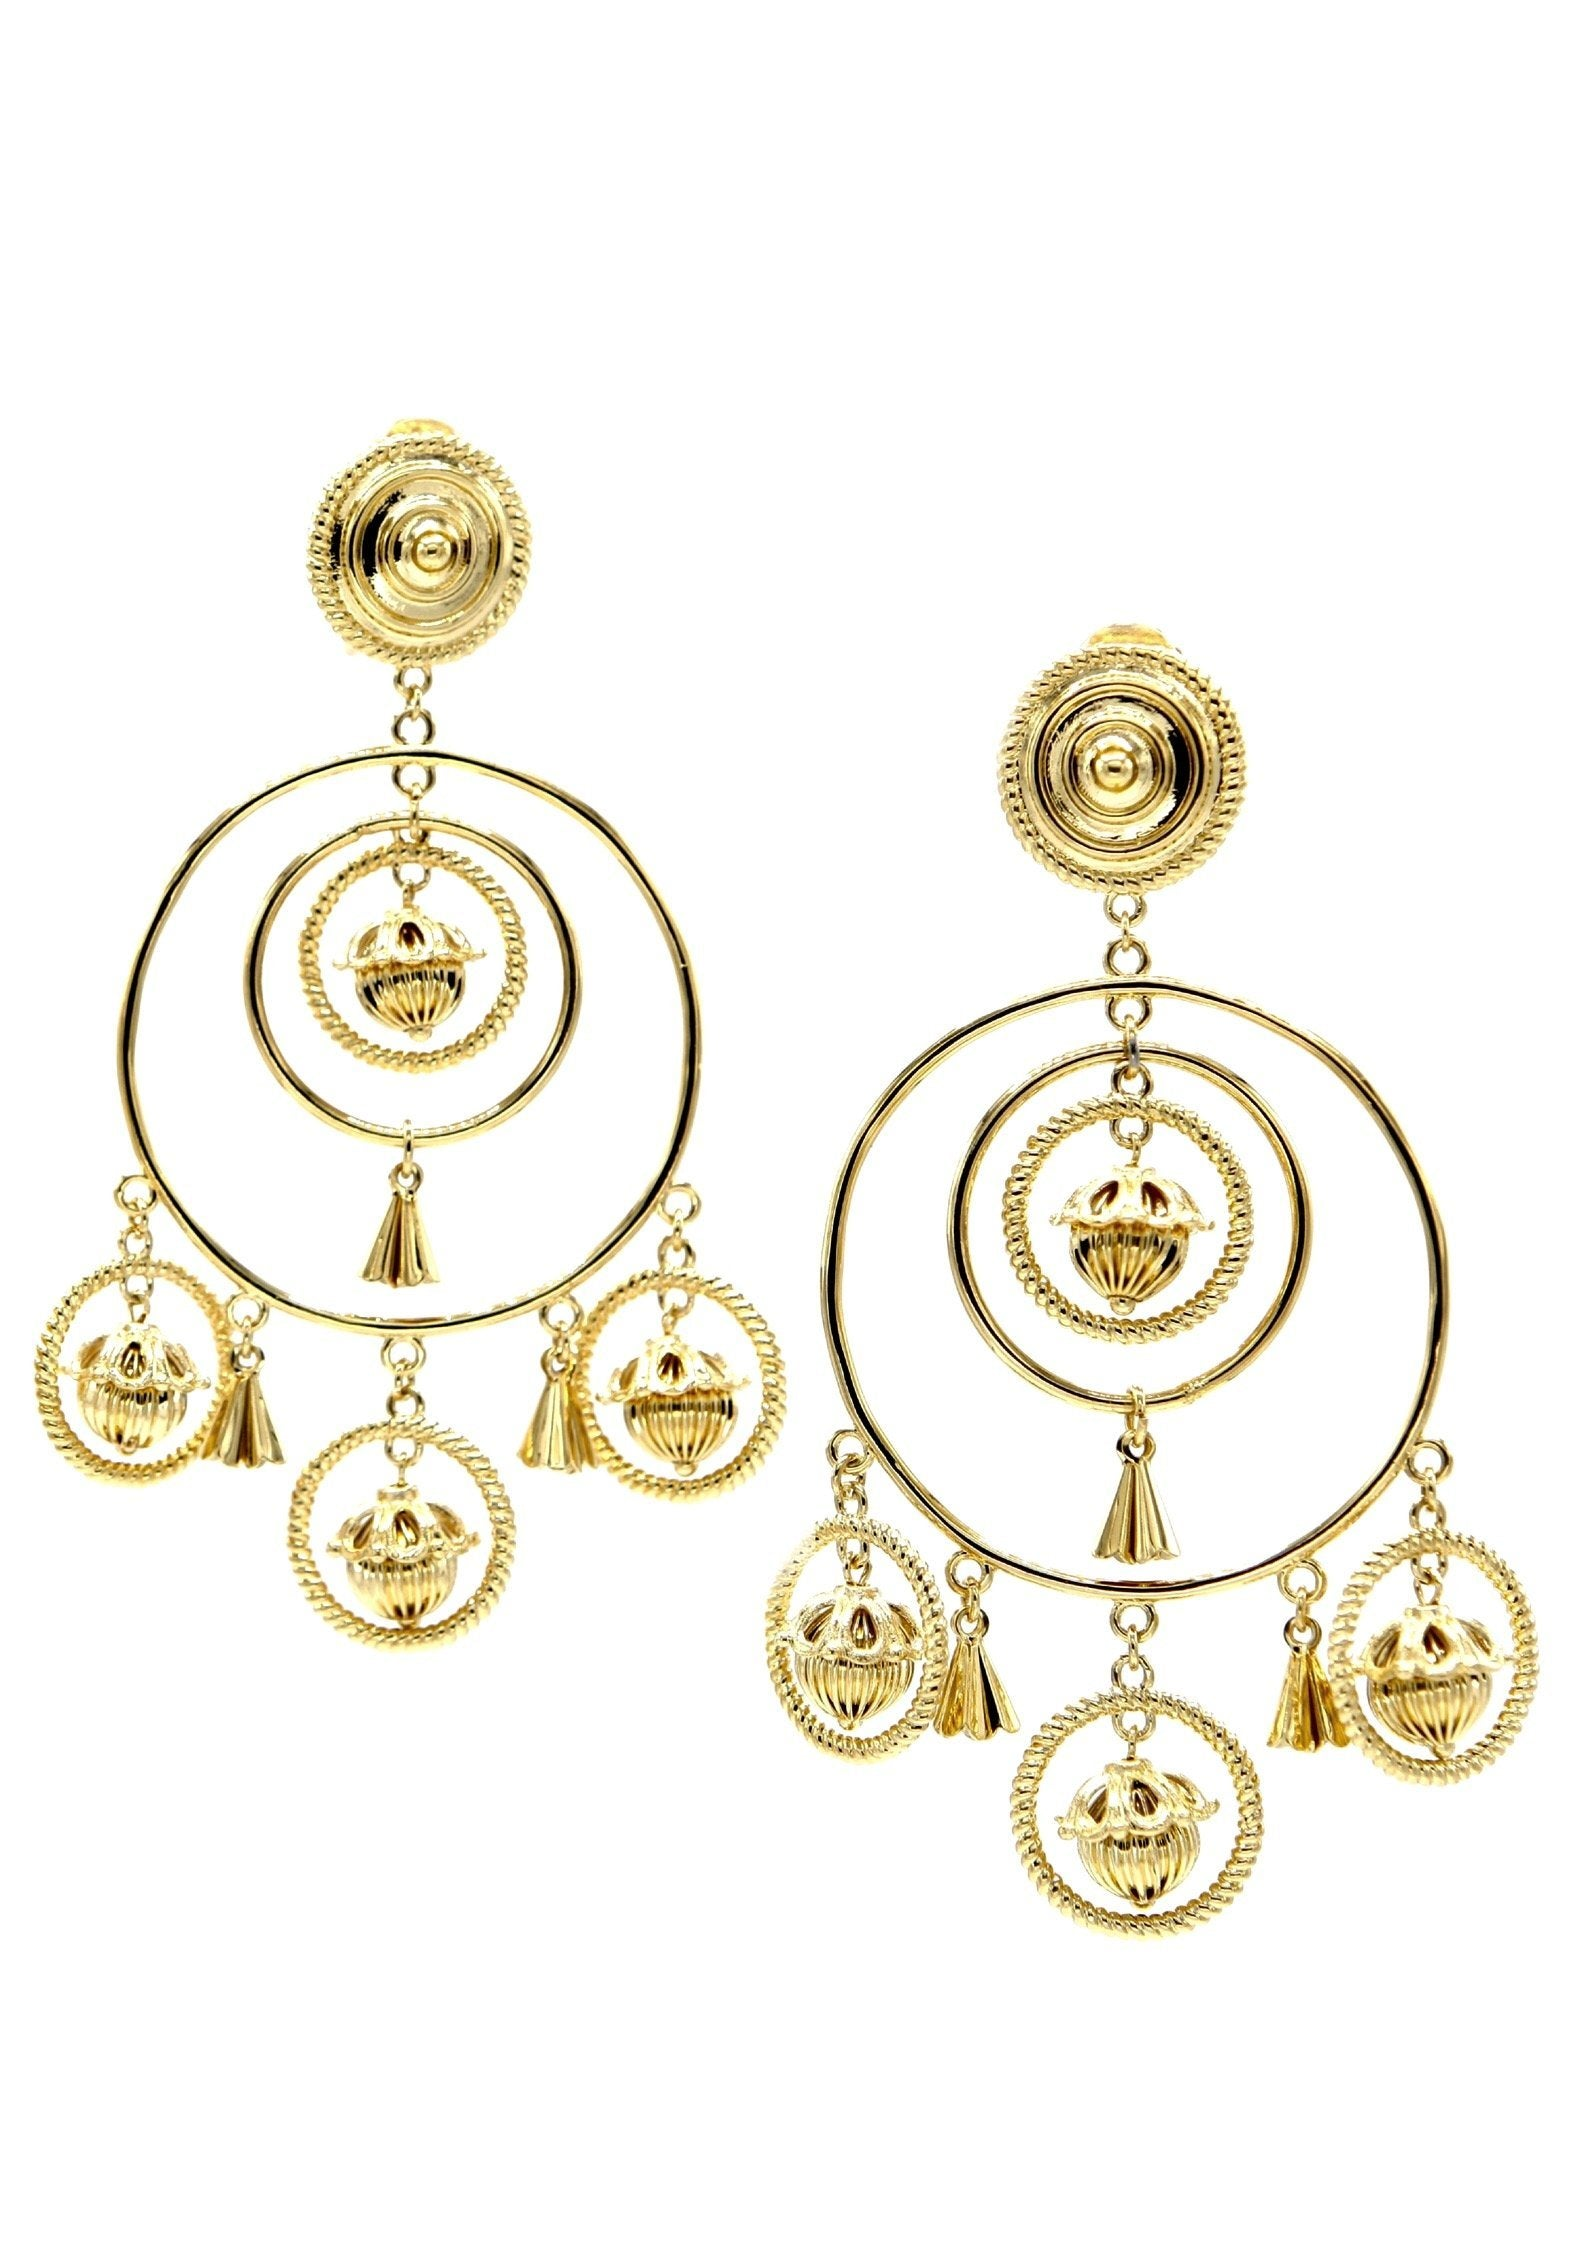 Bollywood chandelier clip on earrings fashion jewelry jared jamin bollywood chandelier clip earrings earrings jared jamin online gold jared jamin aloadofball